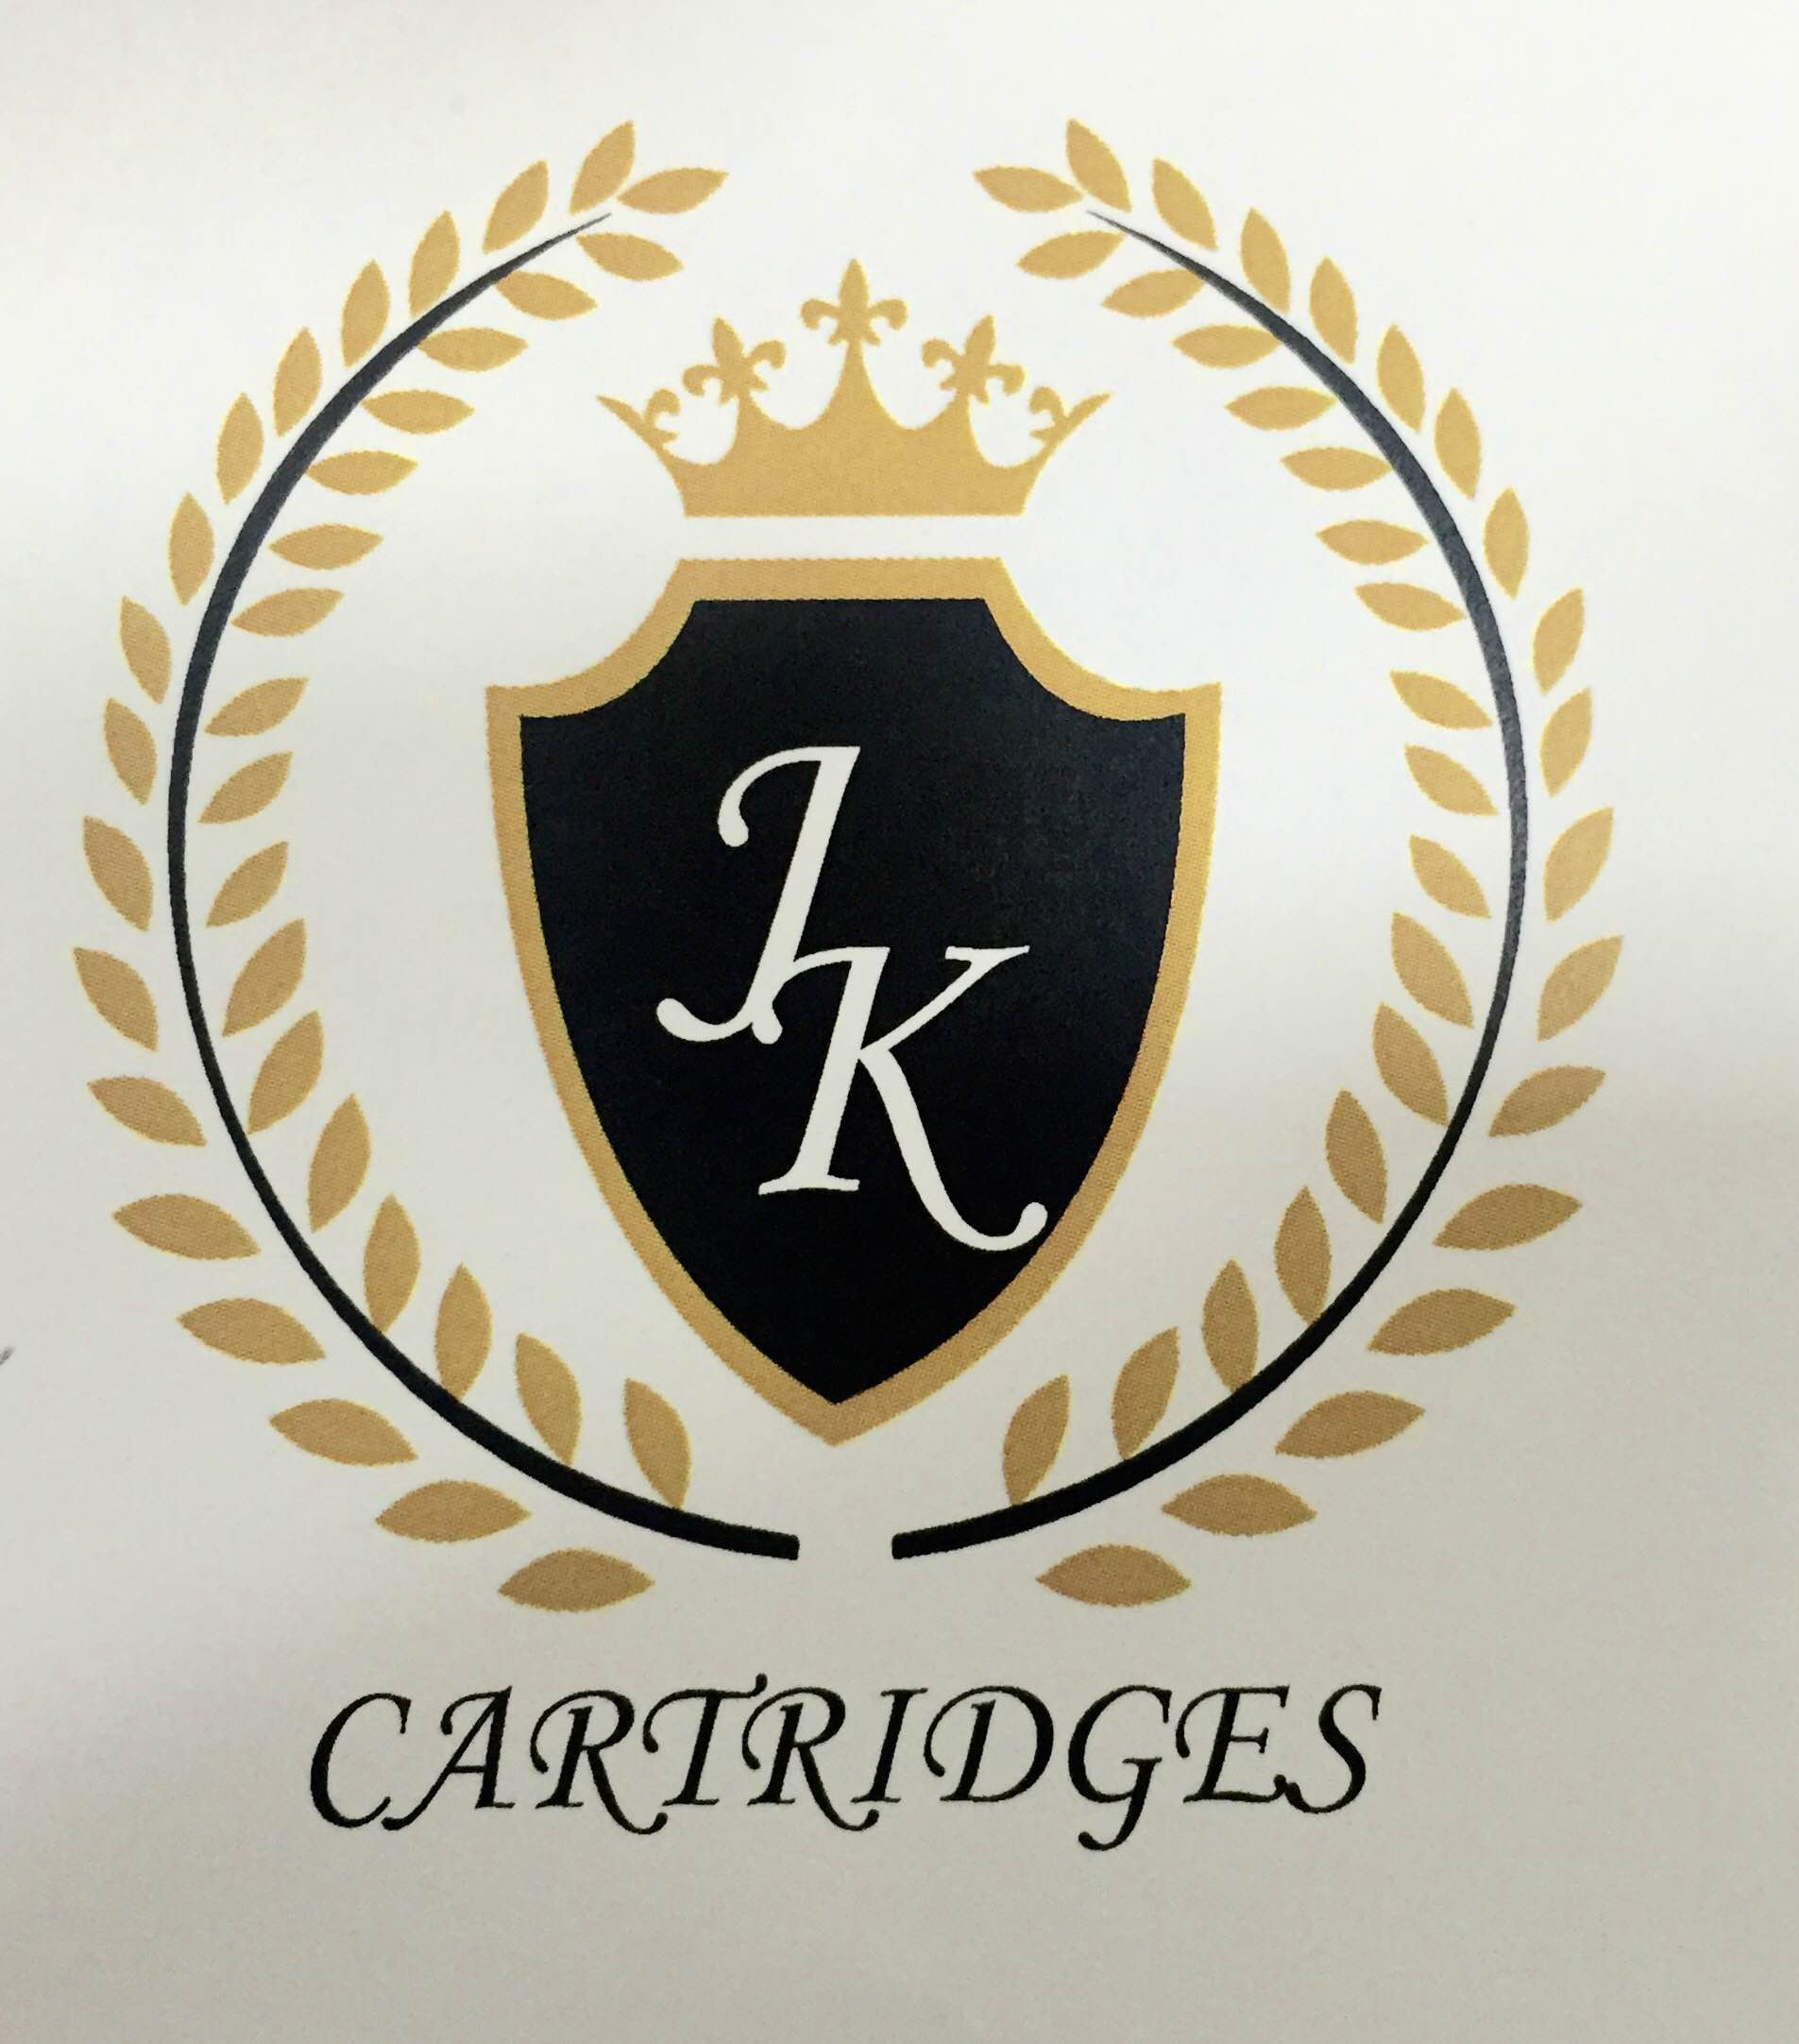 JK CARTRIDGE - logo